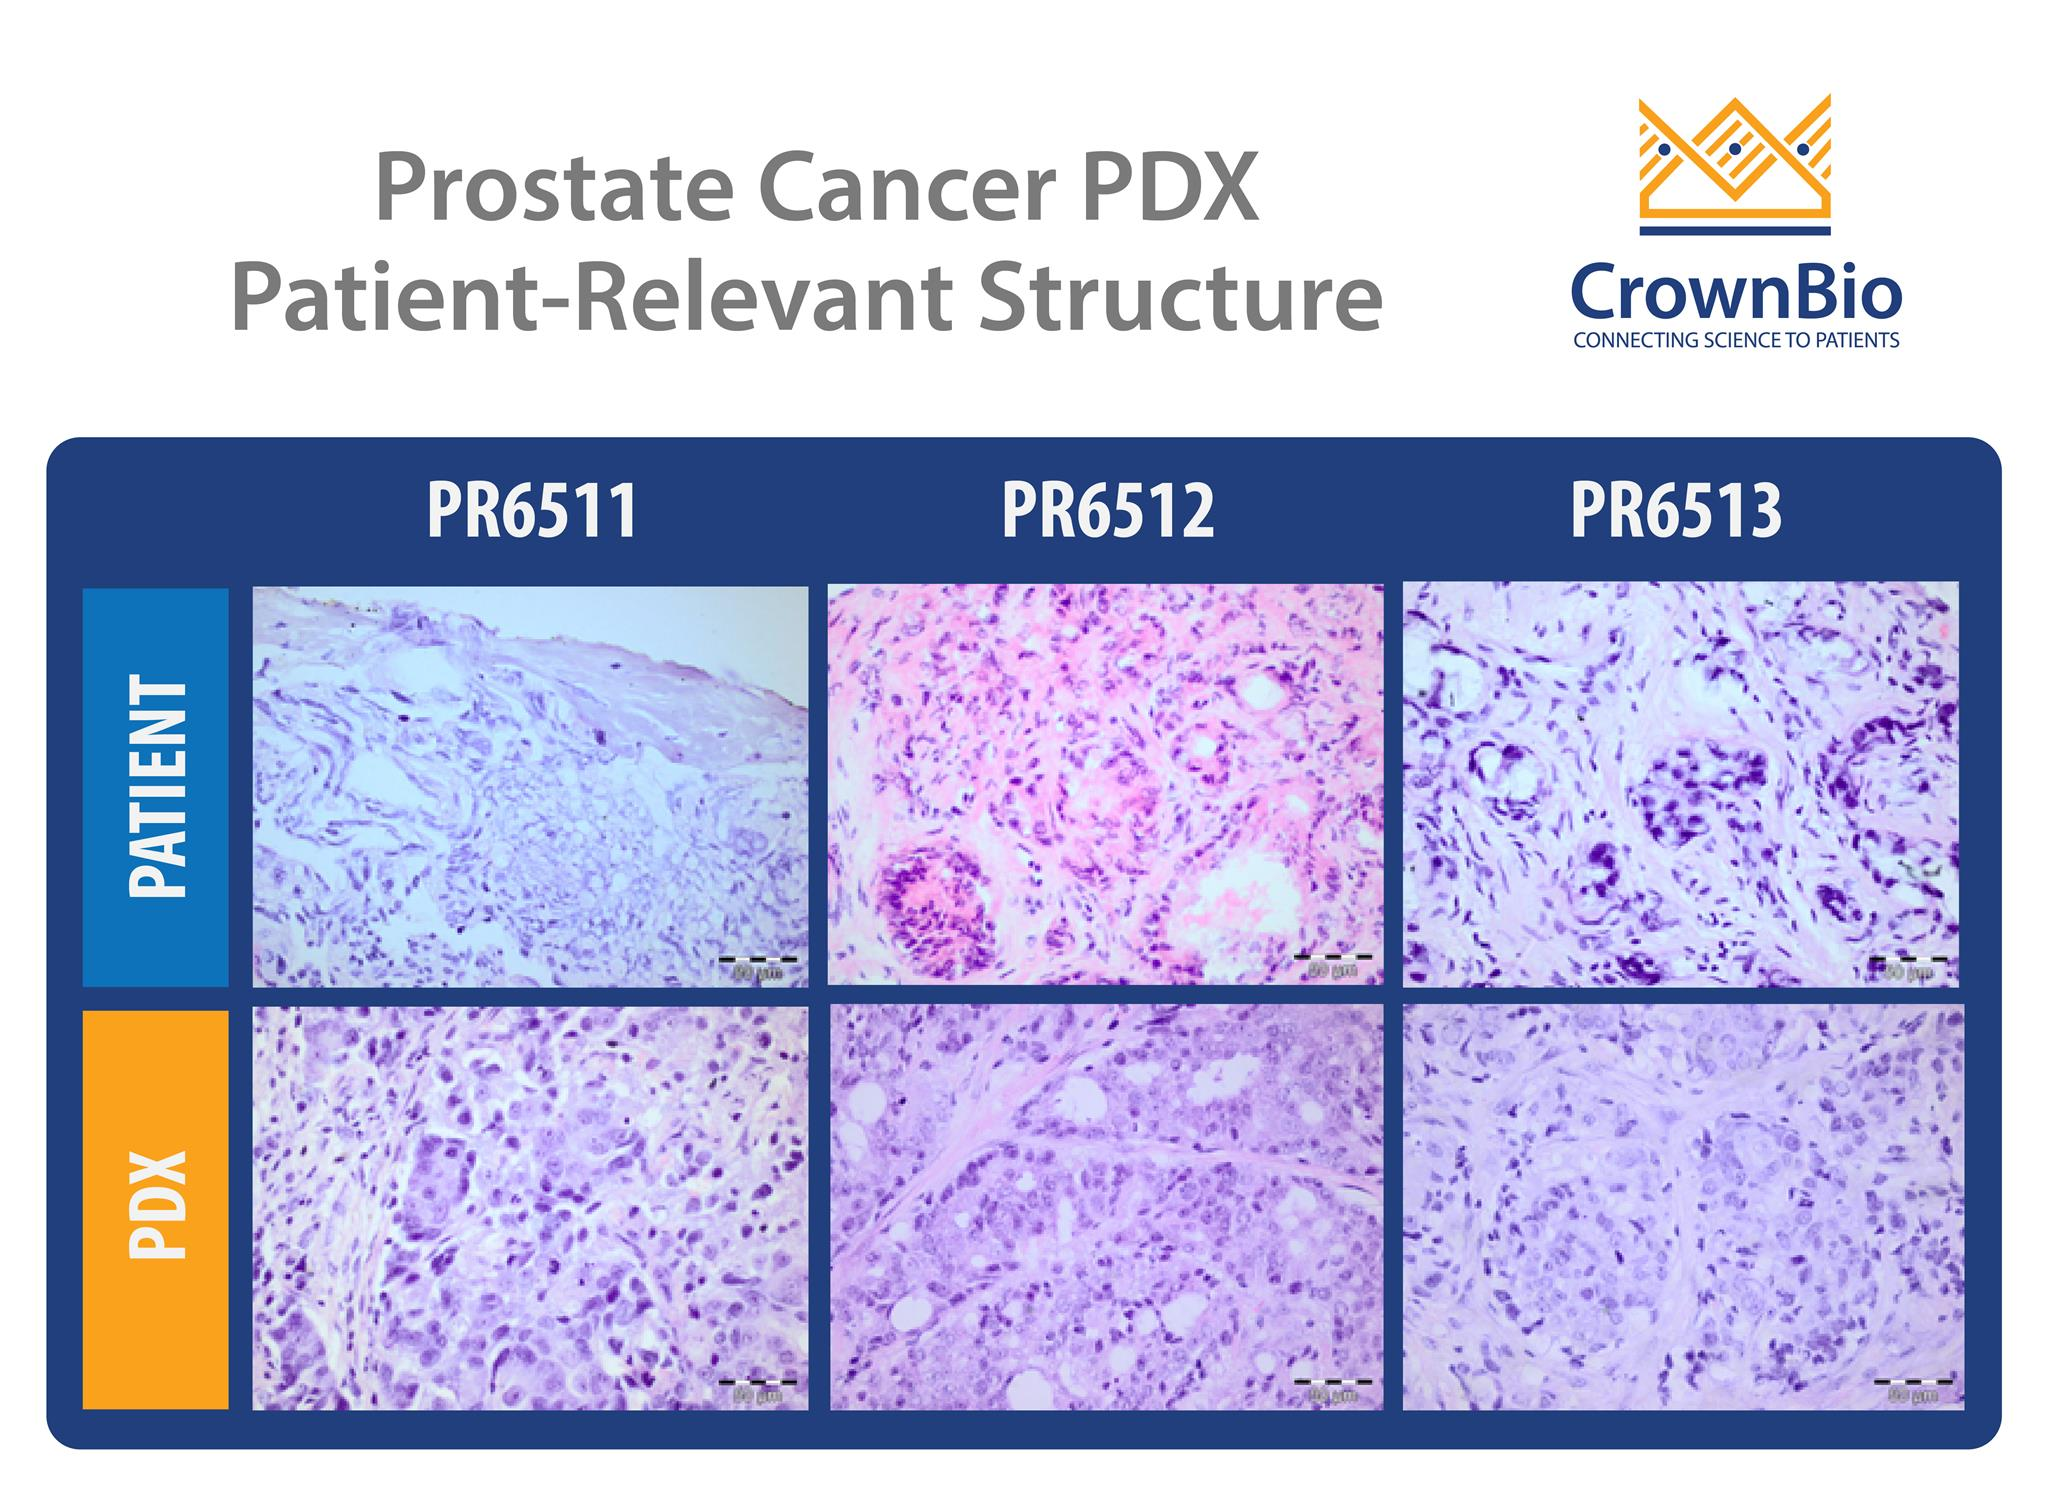 Prostate Cancer Patient-Derived Xenograft (PDX) Models